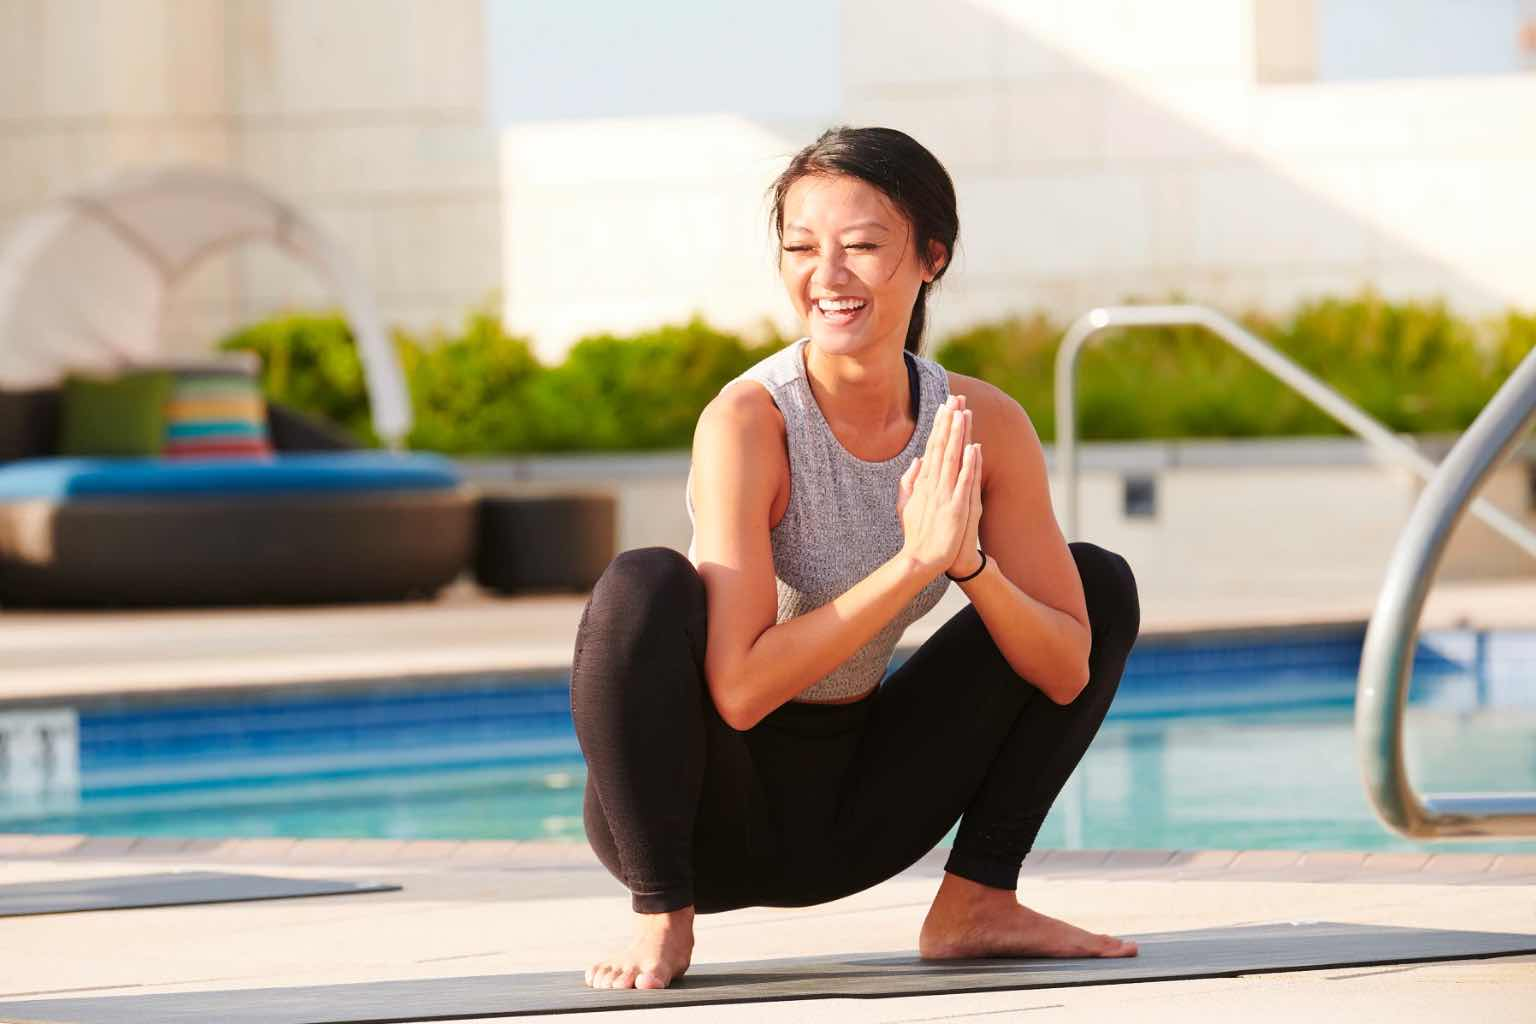 a woman smiling by a pool doing a yoga squat